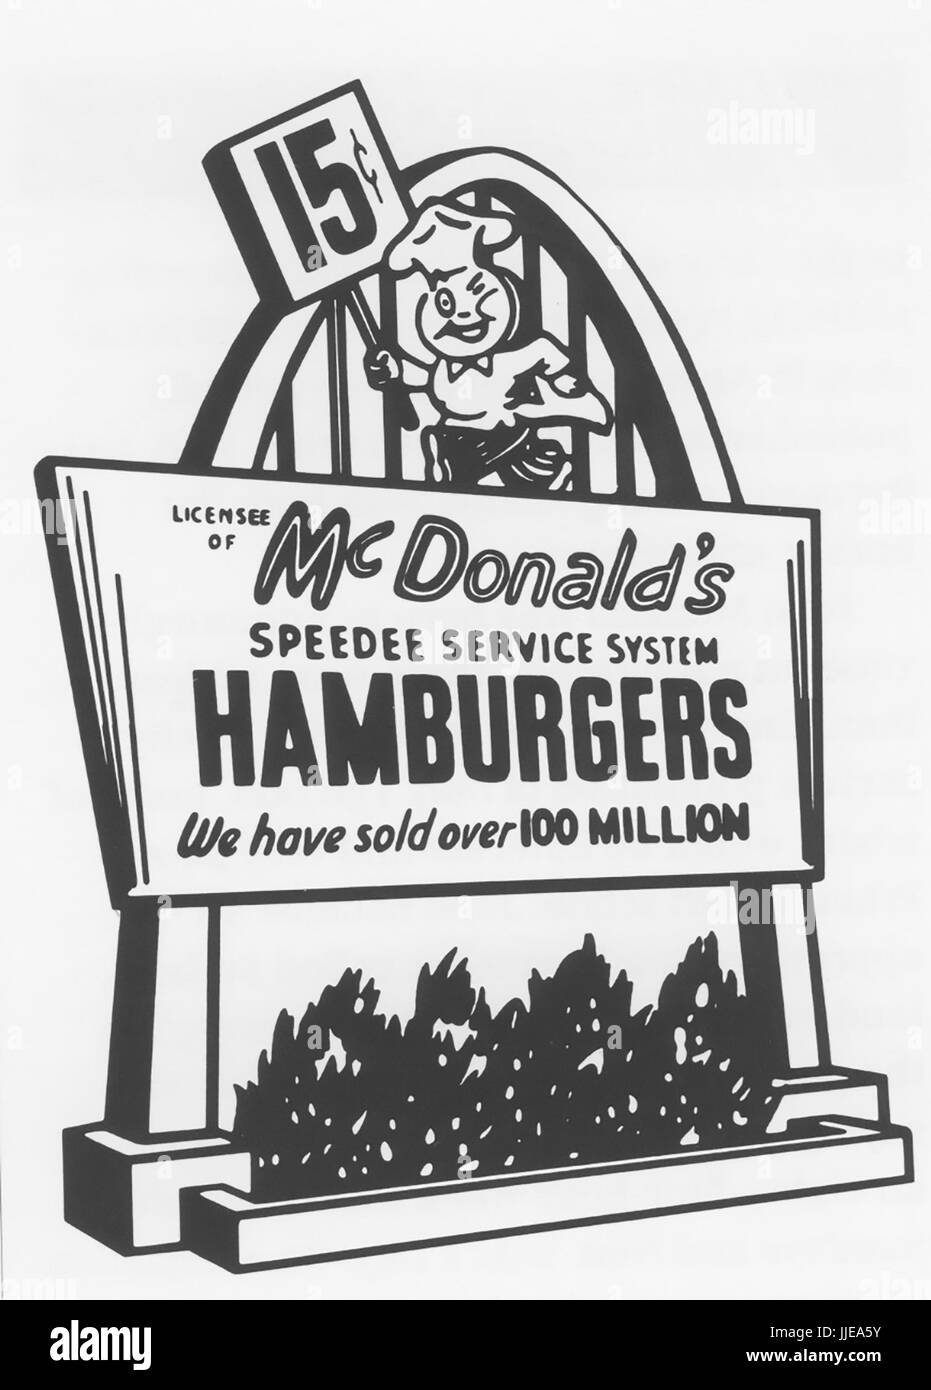 McDONALD'S fast food chain advert about 1953 showing the Speedee chef character - Stock Image